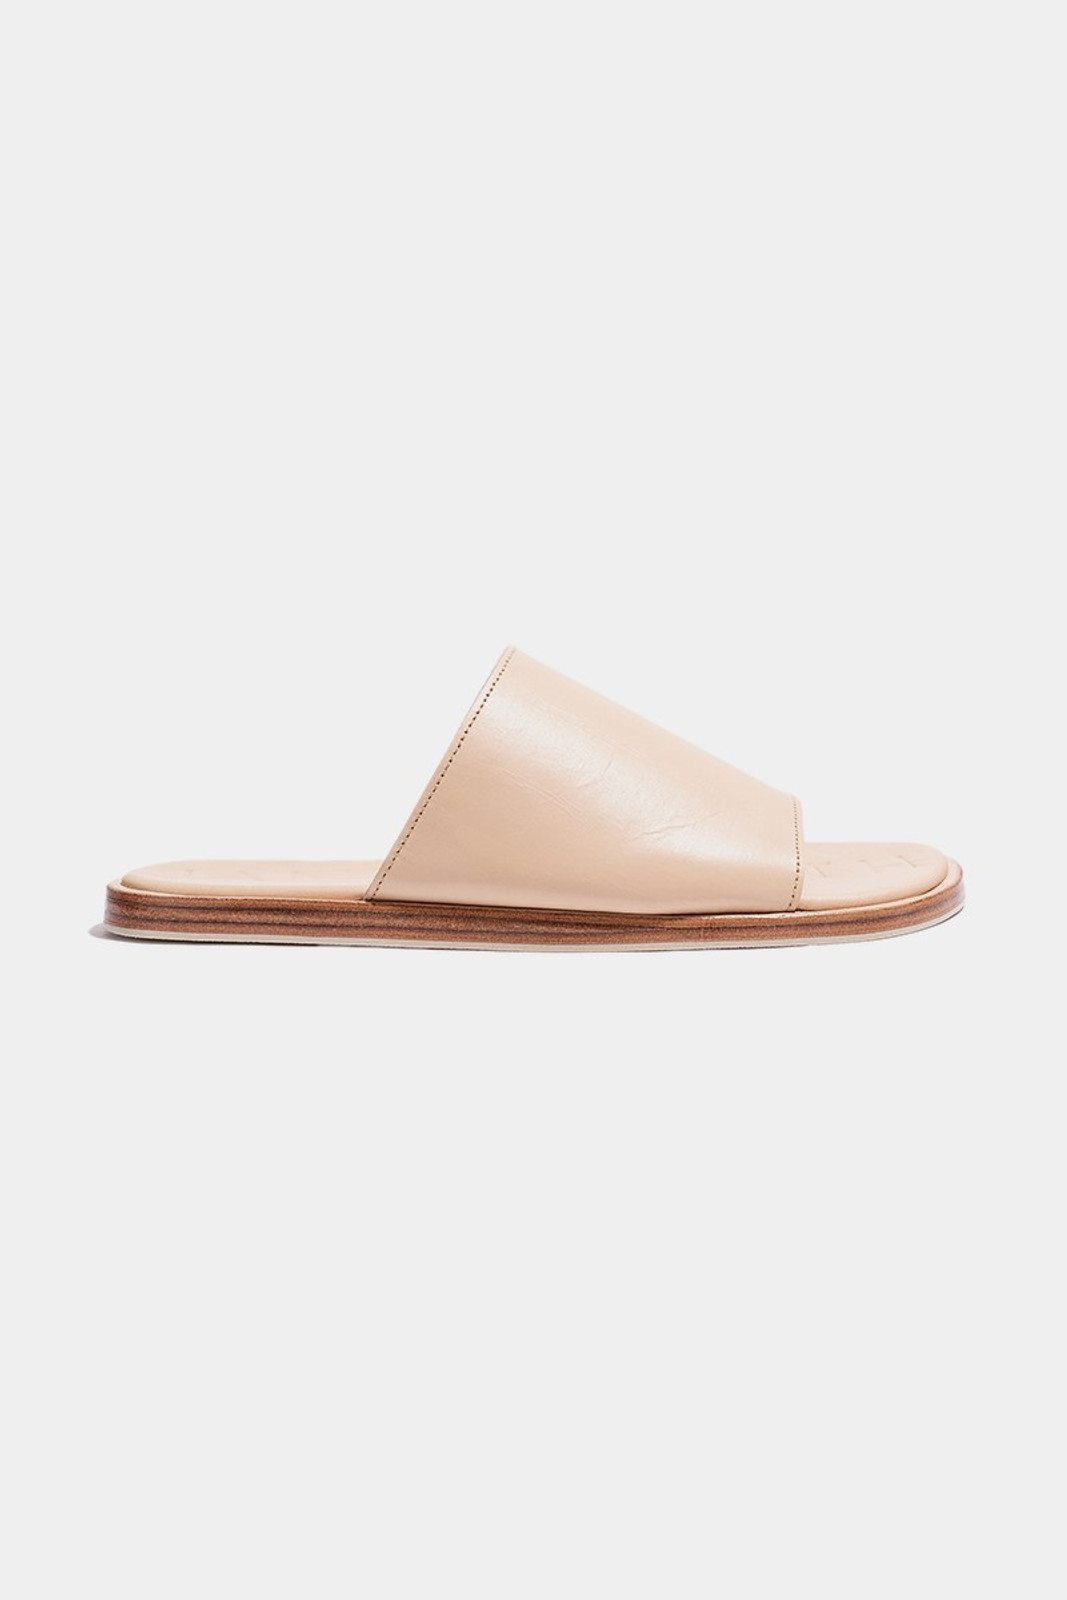 Elka Collective  Neutrals JAMES SMITH SLIDES OFF DUTY 6